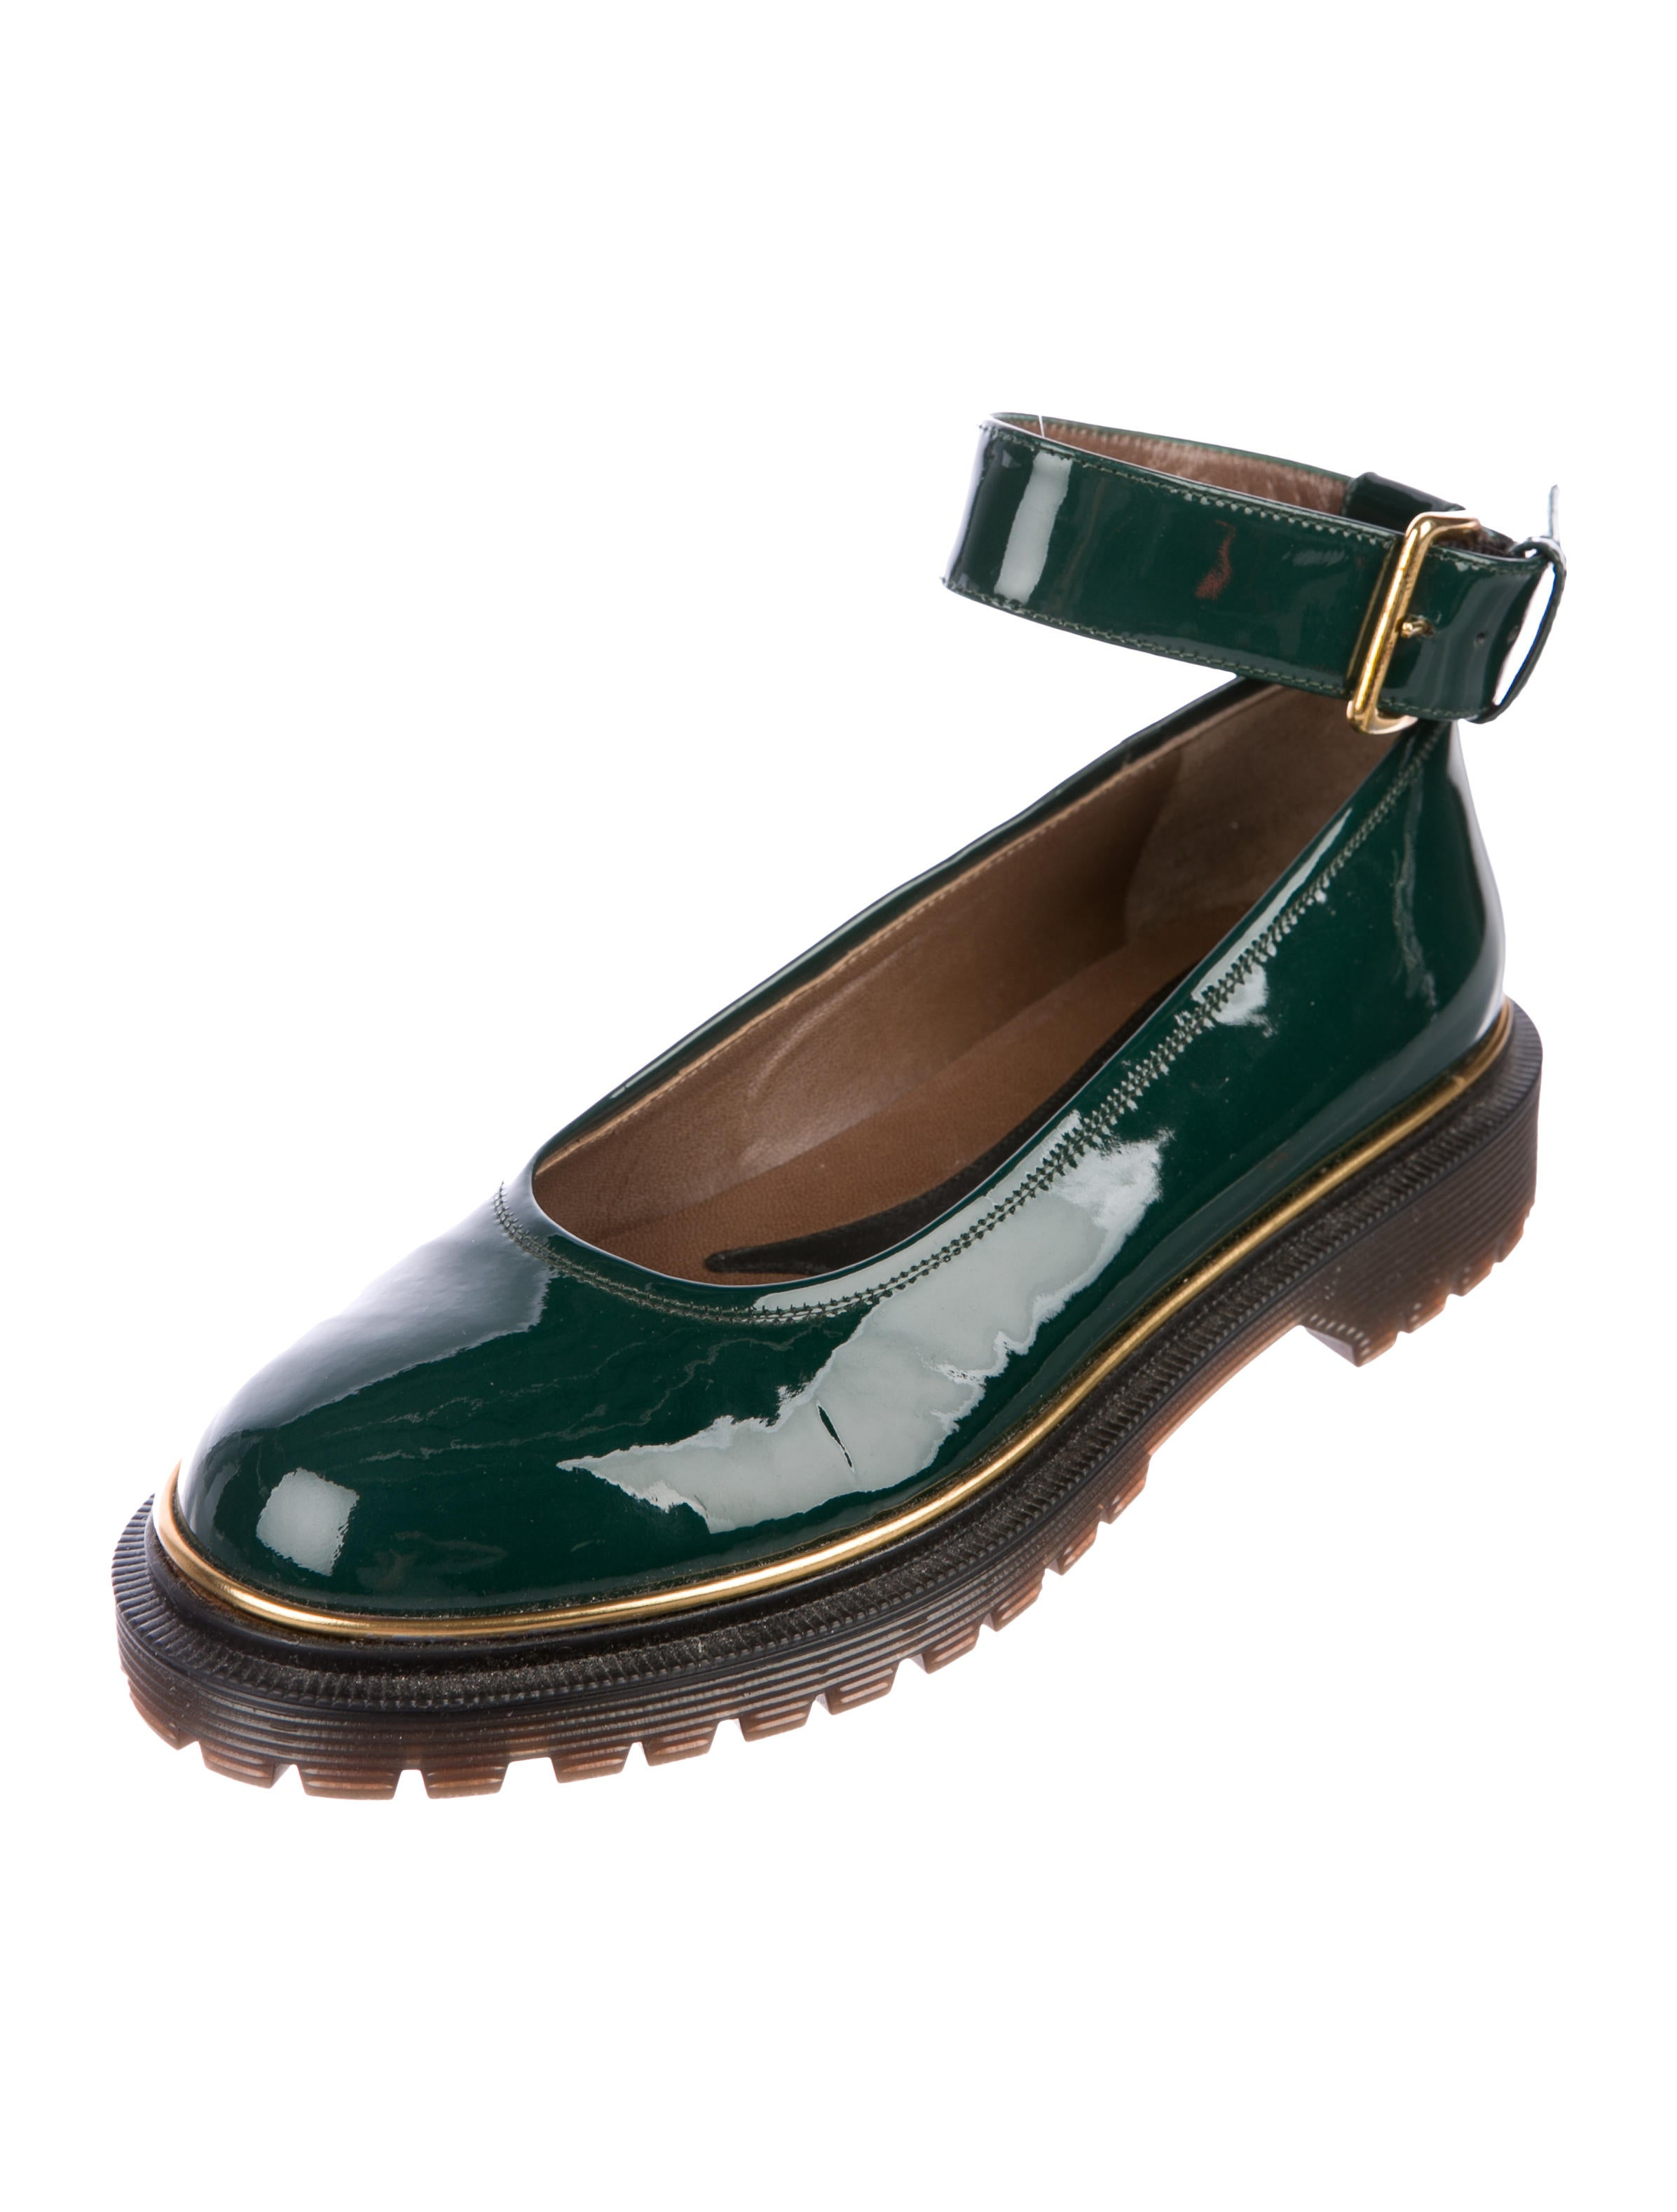 Marni Patent Leather Round-Toe Flats free shipping cheapest price boz6t